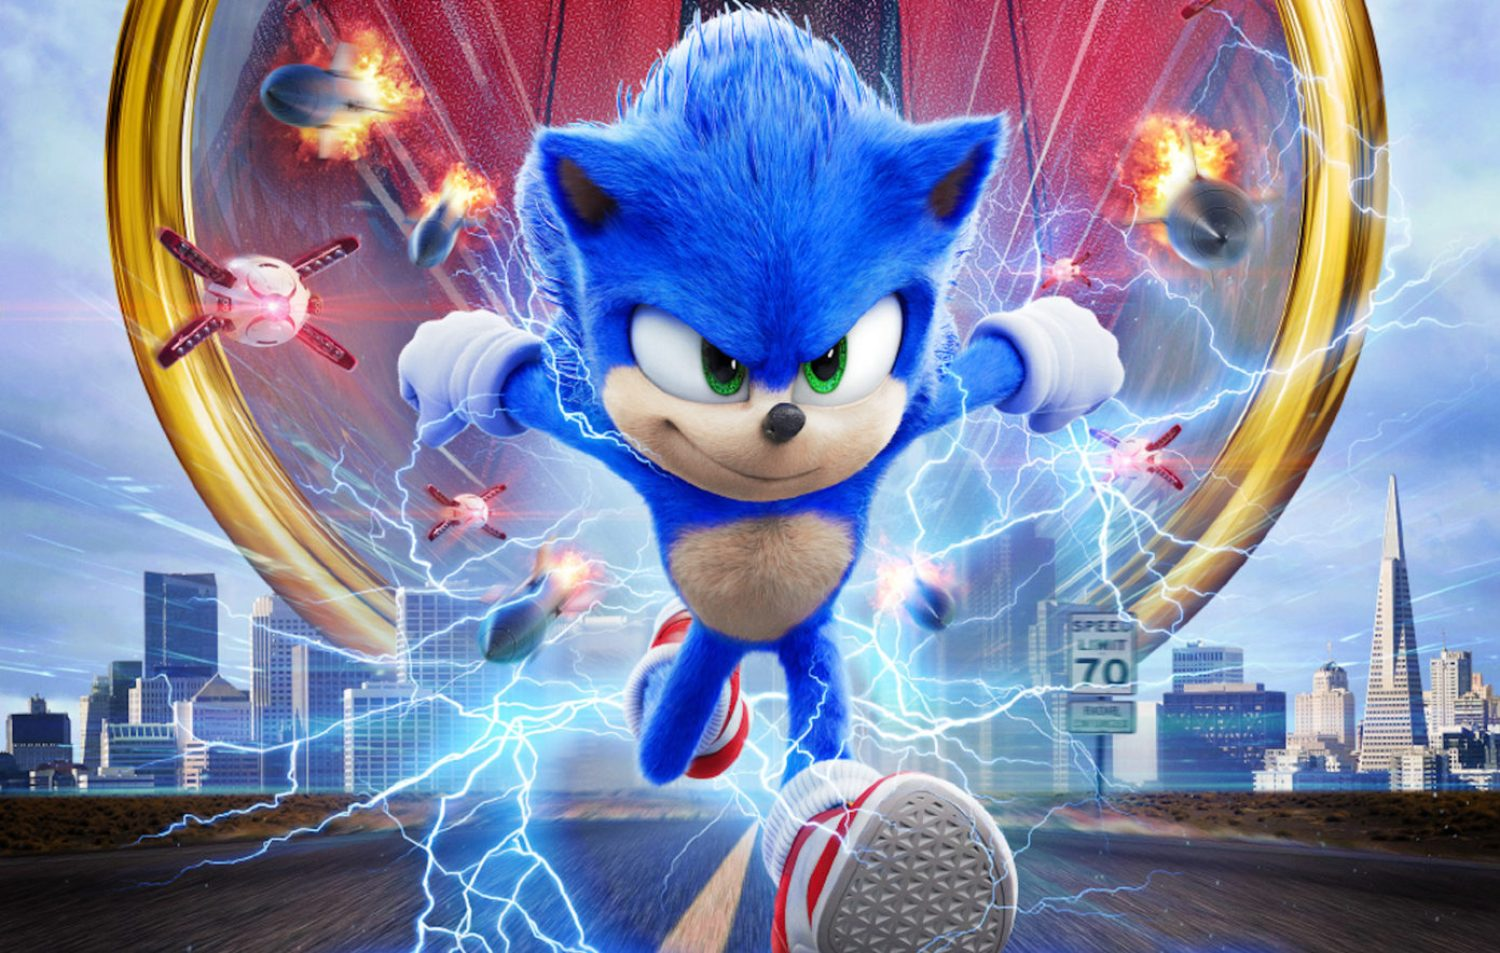 Sonic The Hedgehog 2' set to begin filming in March